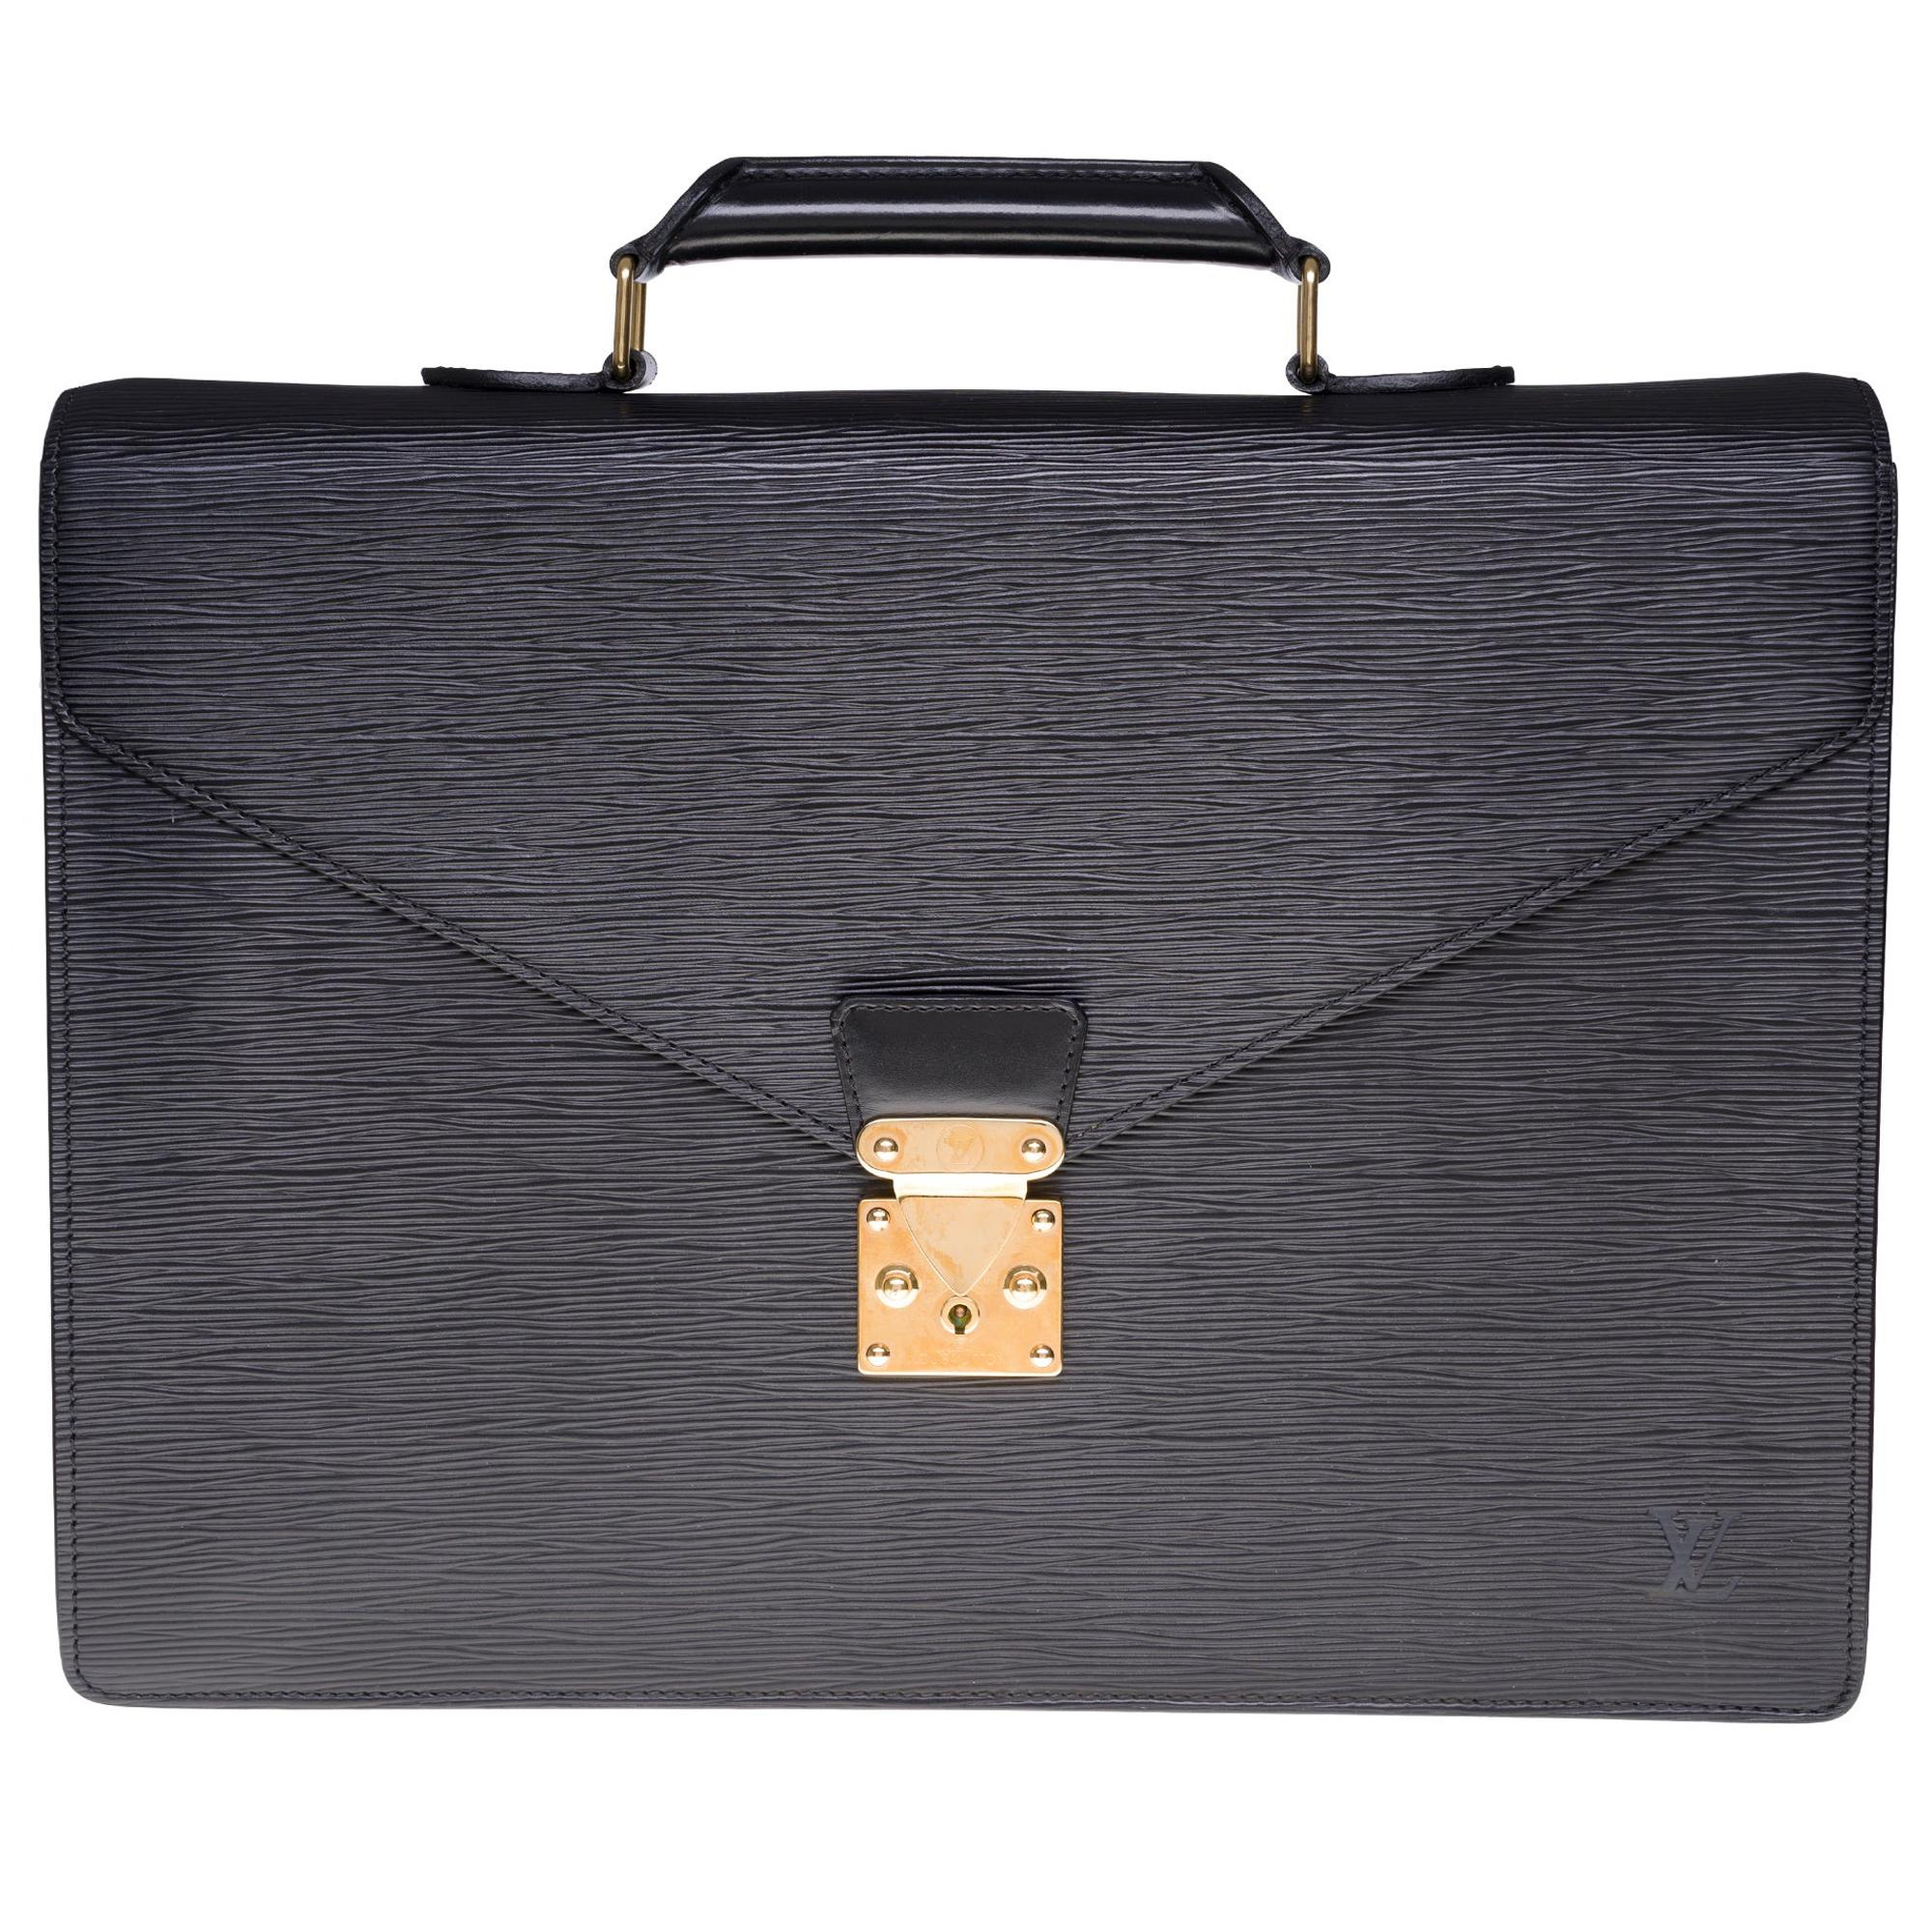 """Louis Vuitton """"Laguito"""" Satchel in grey Taïga leather and silver hardware"""